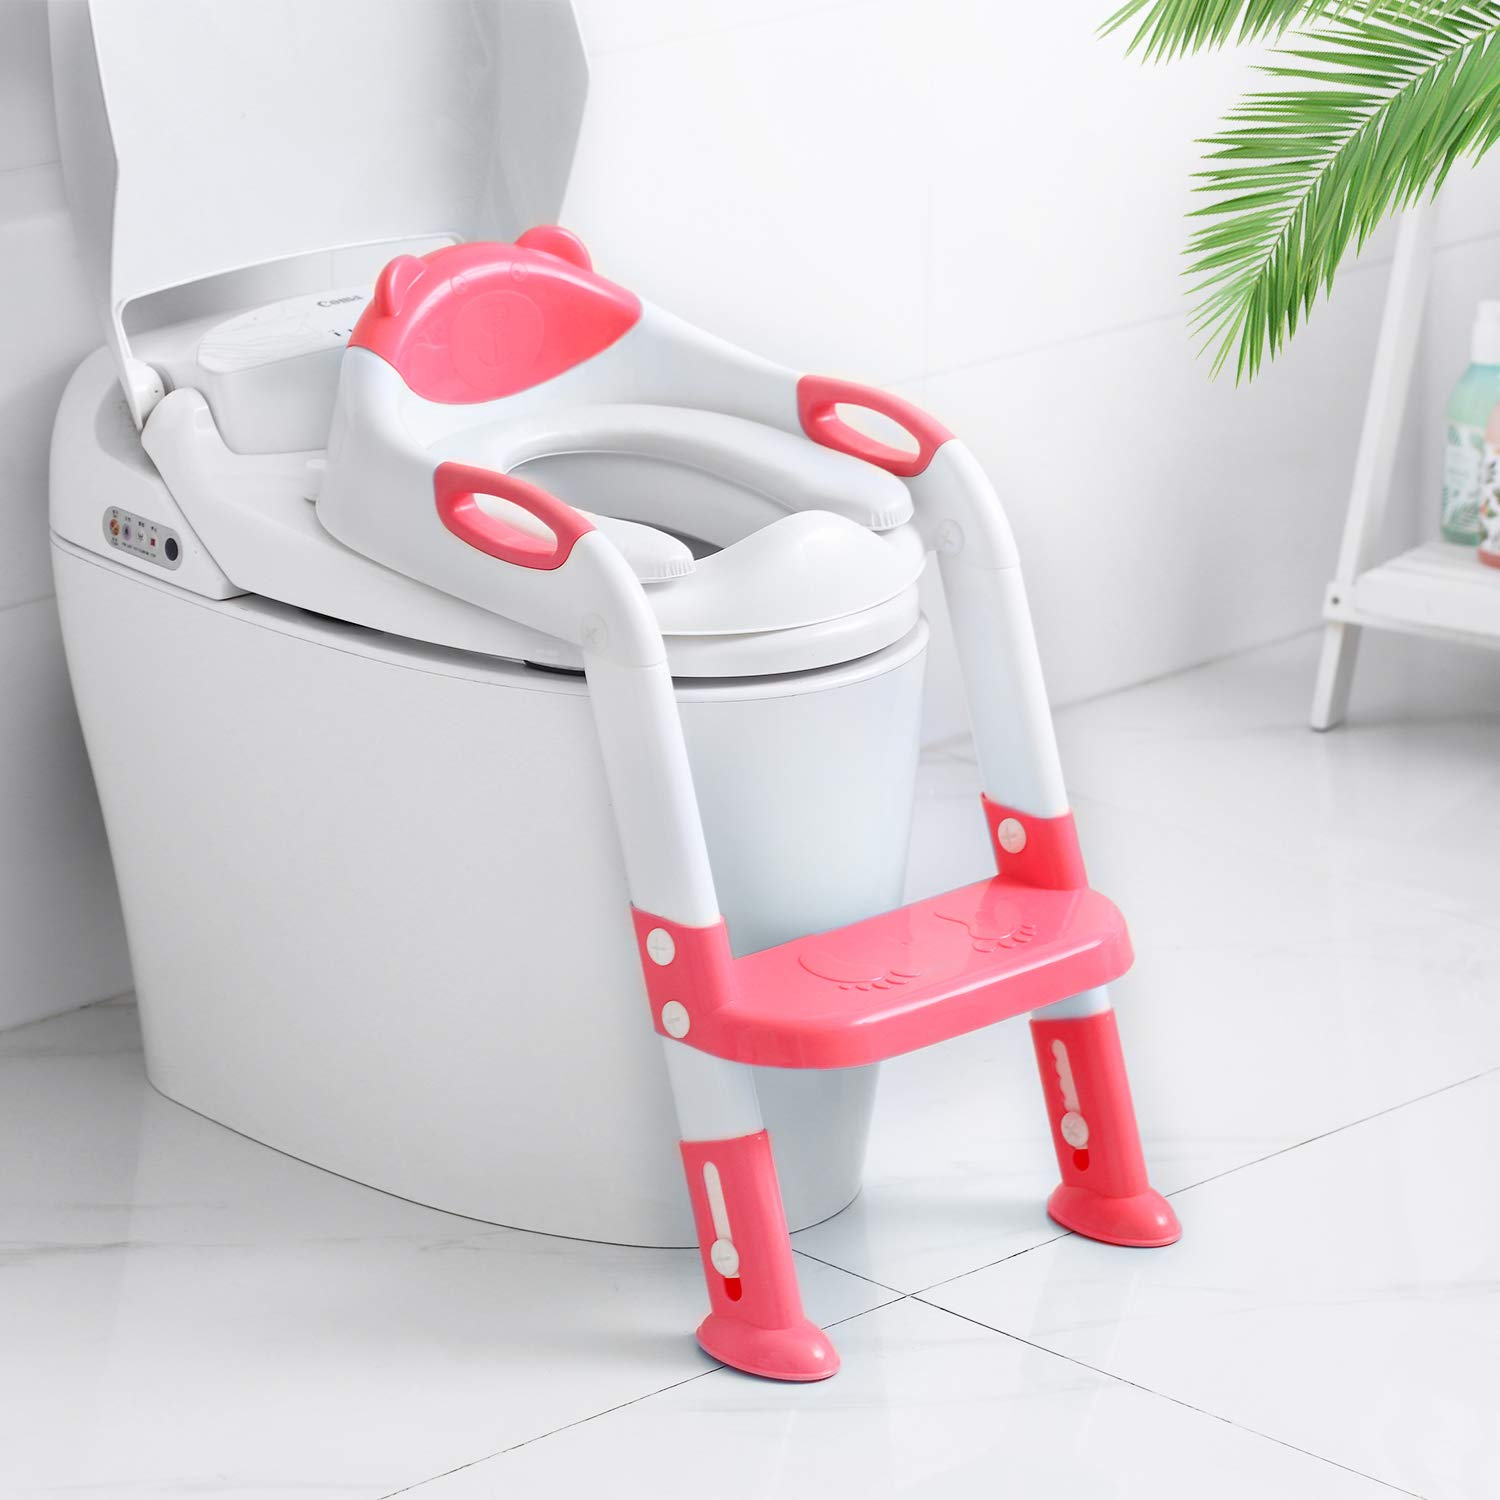 Victostar Potty Training Seat with Step Stool Ladder Foldable Potty Training Toilet for Kids Boys Girls Toddlers-Comfortable Cushion Safe Handle Anti-Slip Pads